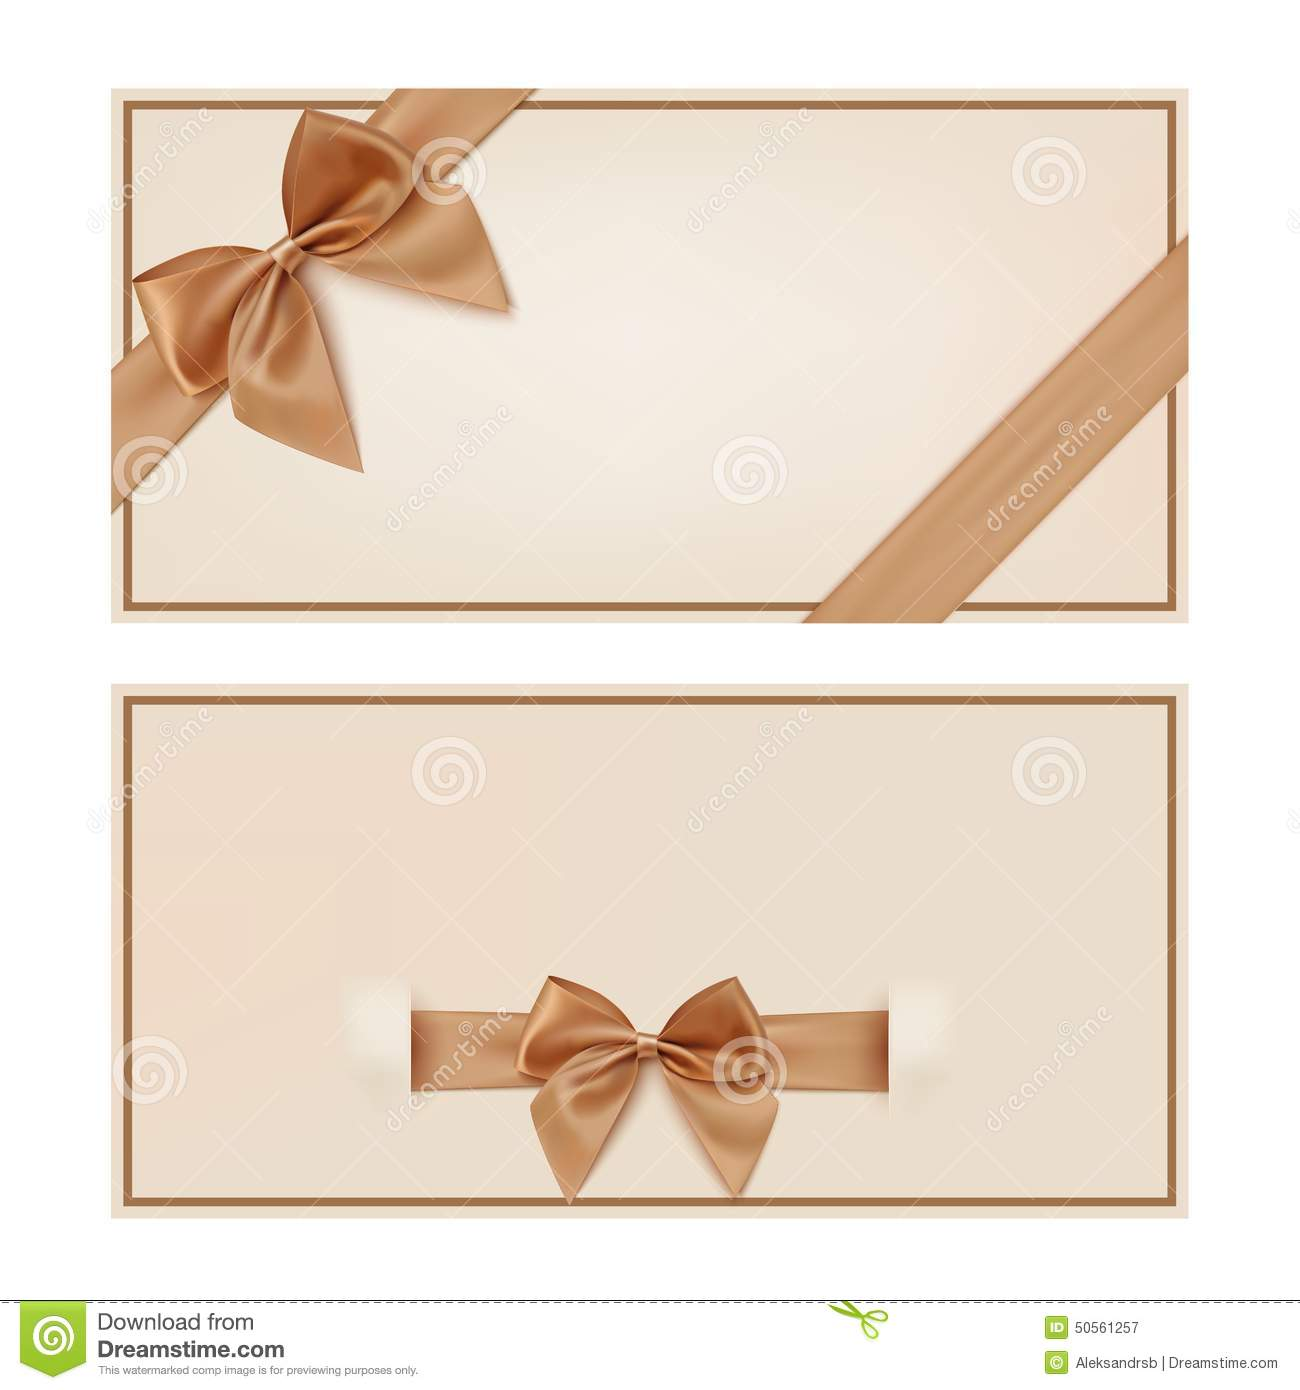 Gift Voucher Template With Golden Ribbon And A Bow Stock